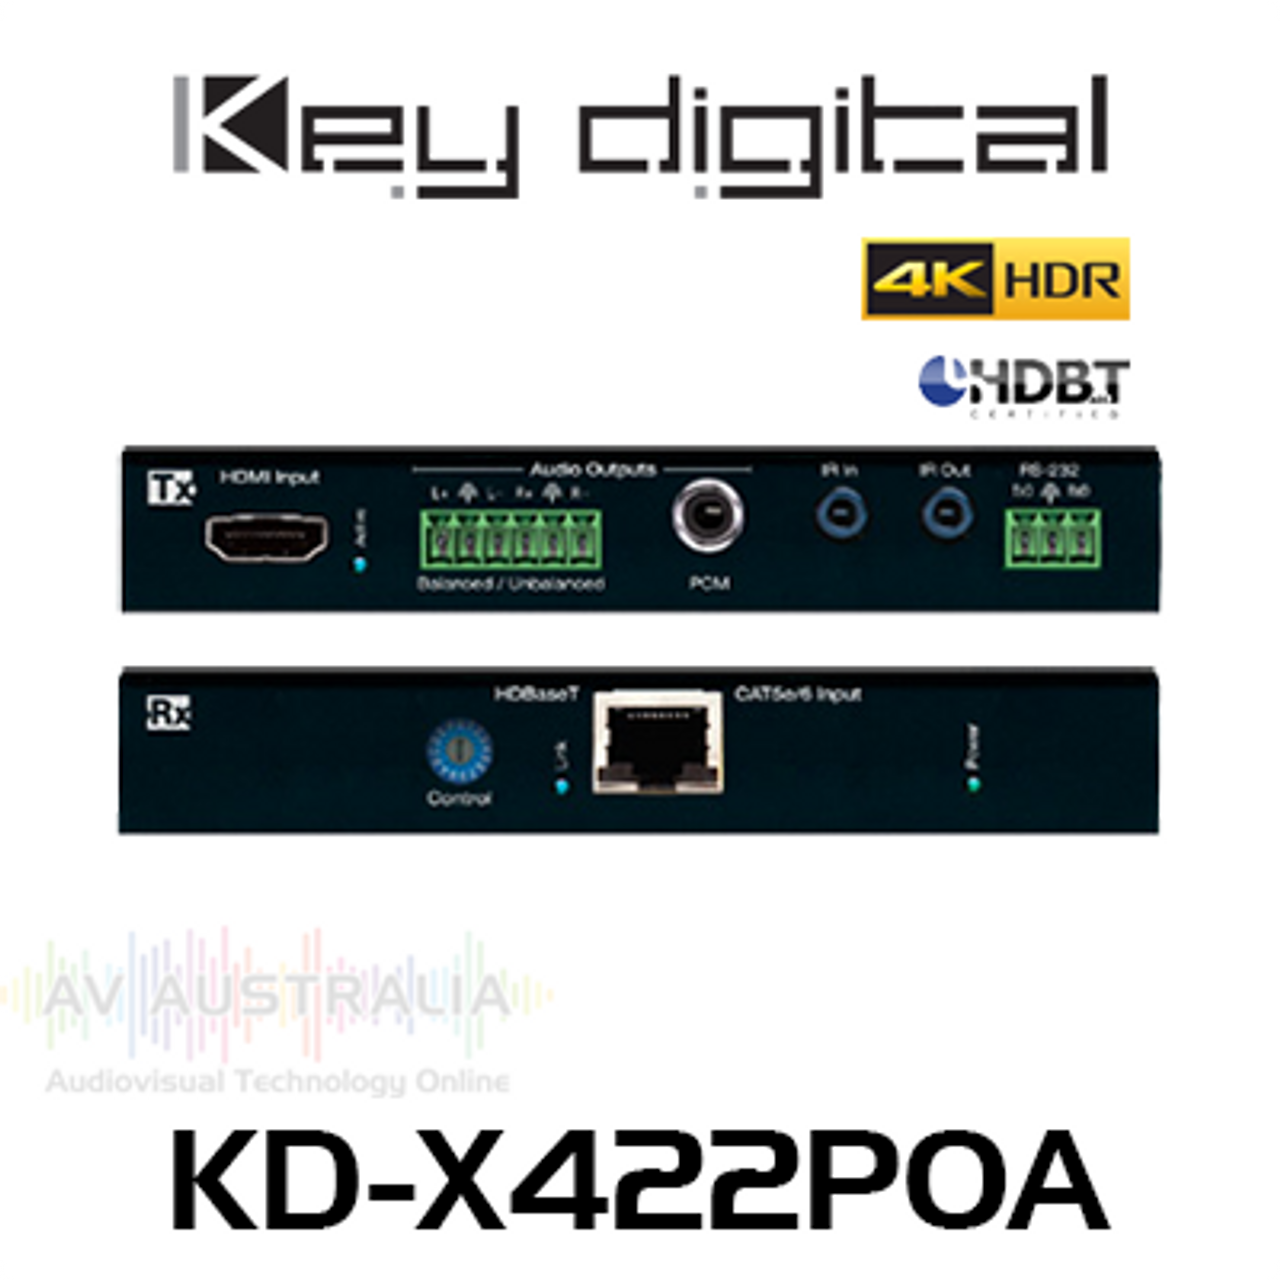 Key Digital KD-X422POA 4K PoH HDBaseT HDMI Extender Kit with Audio De-Embedder (45m)